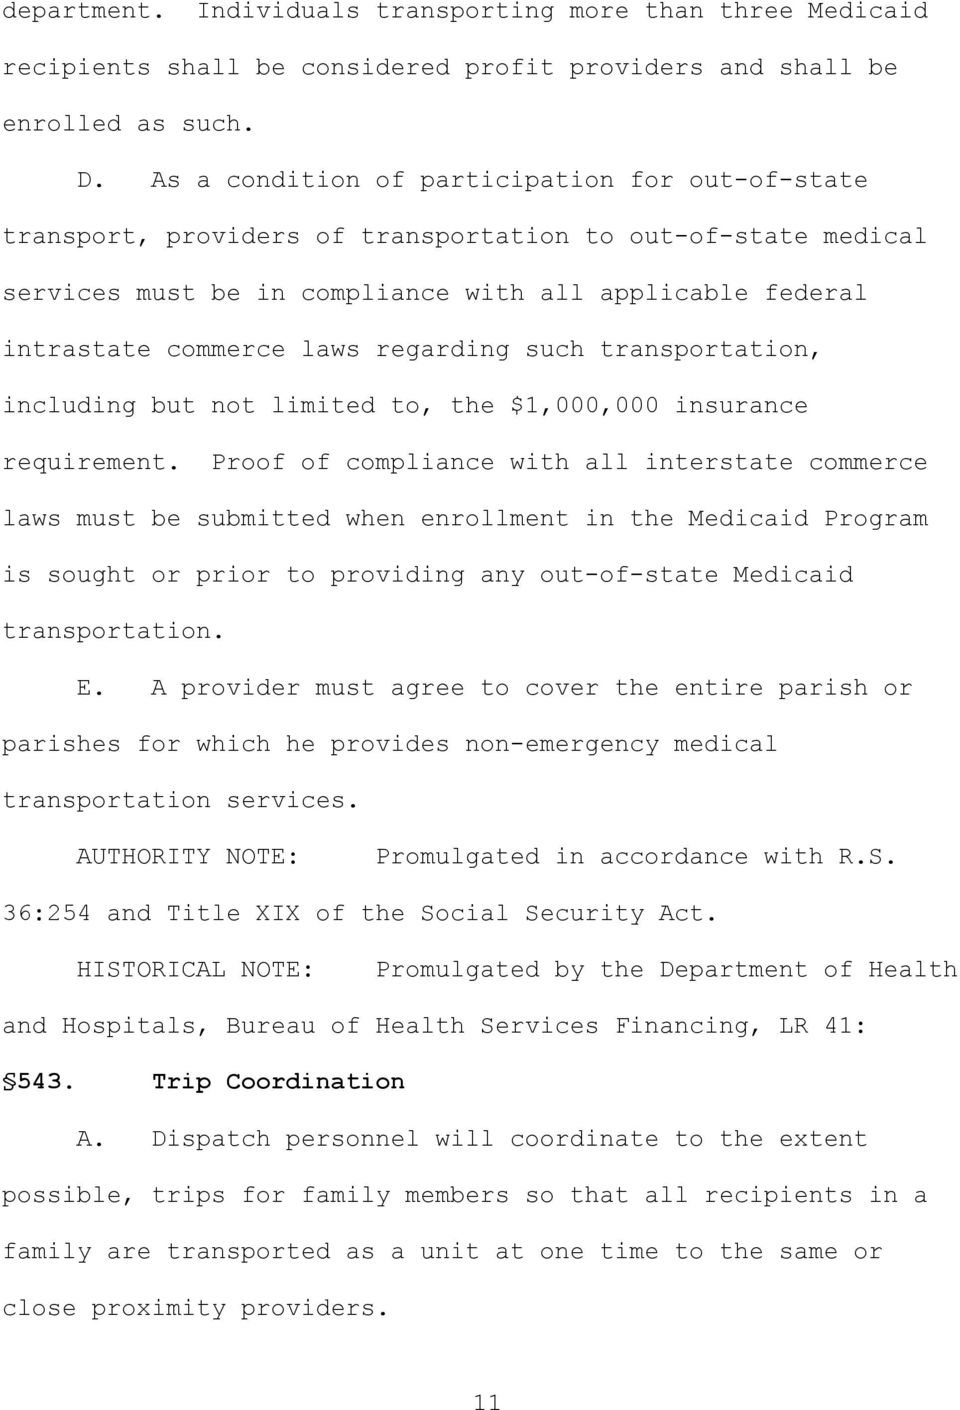 regarding such transportation, including but not limited to, the $1,000,000 insurance requirement.